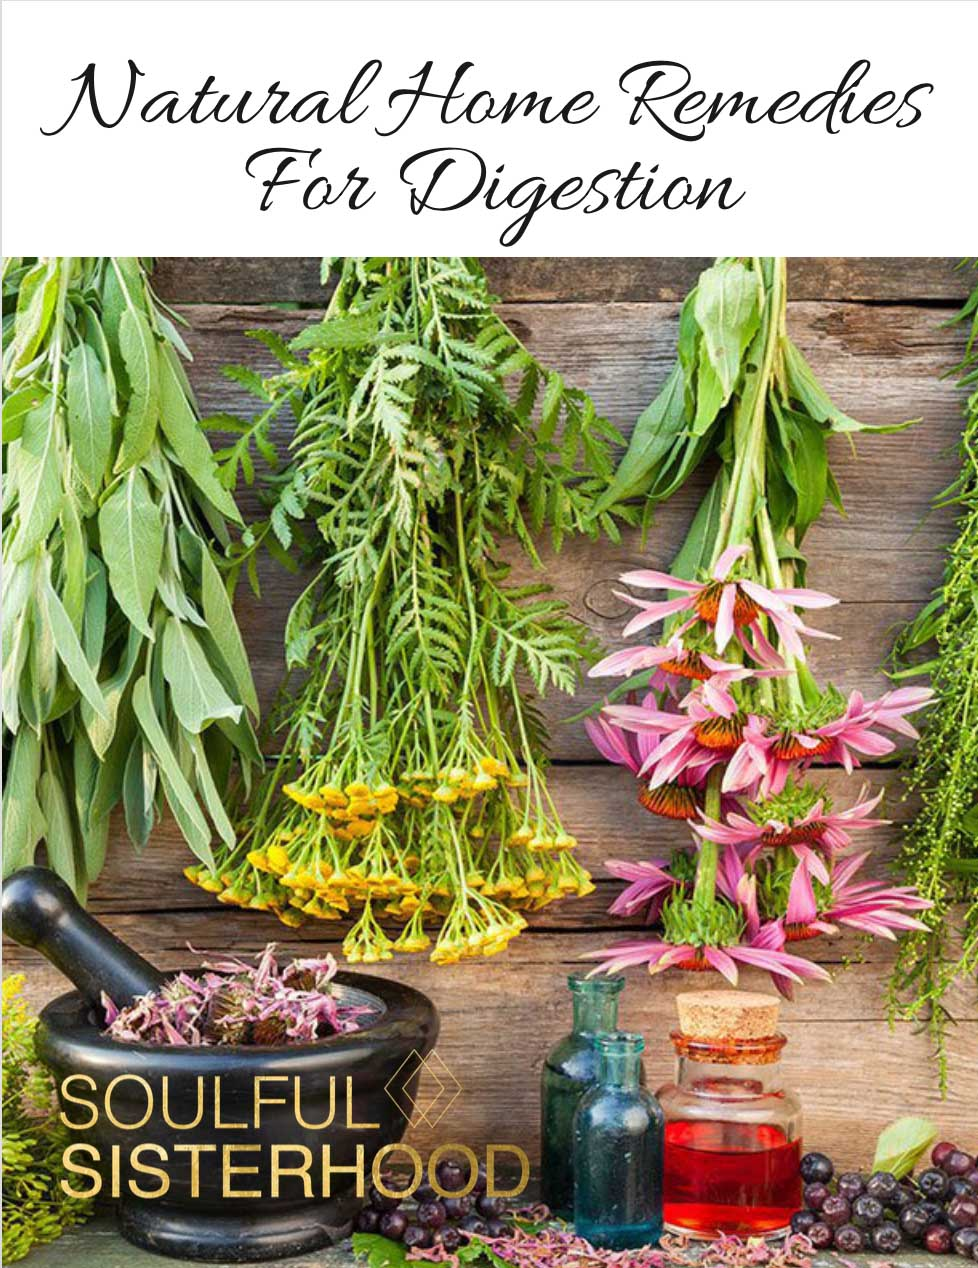 SS - Natural Home Remedies for Digestion E-book.jpg